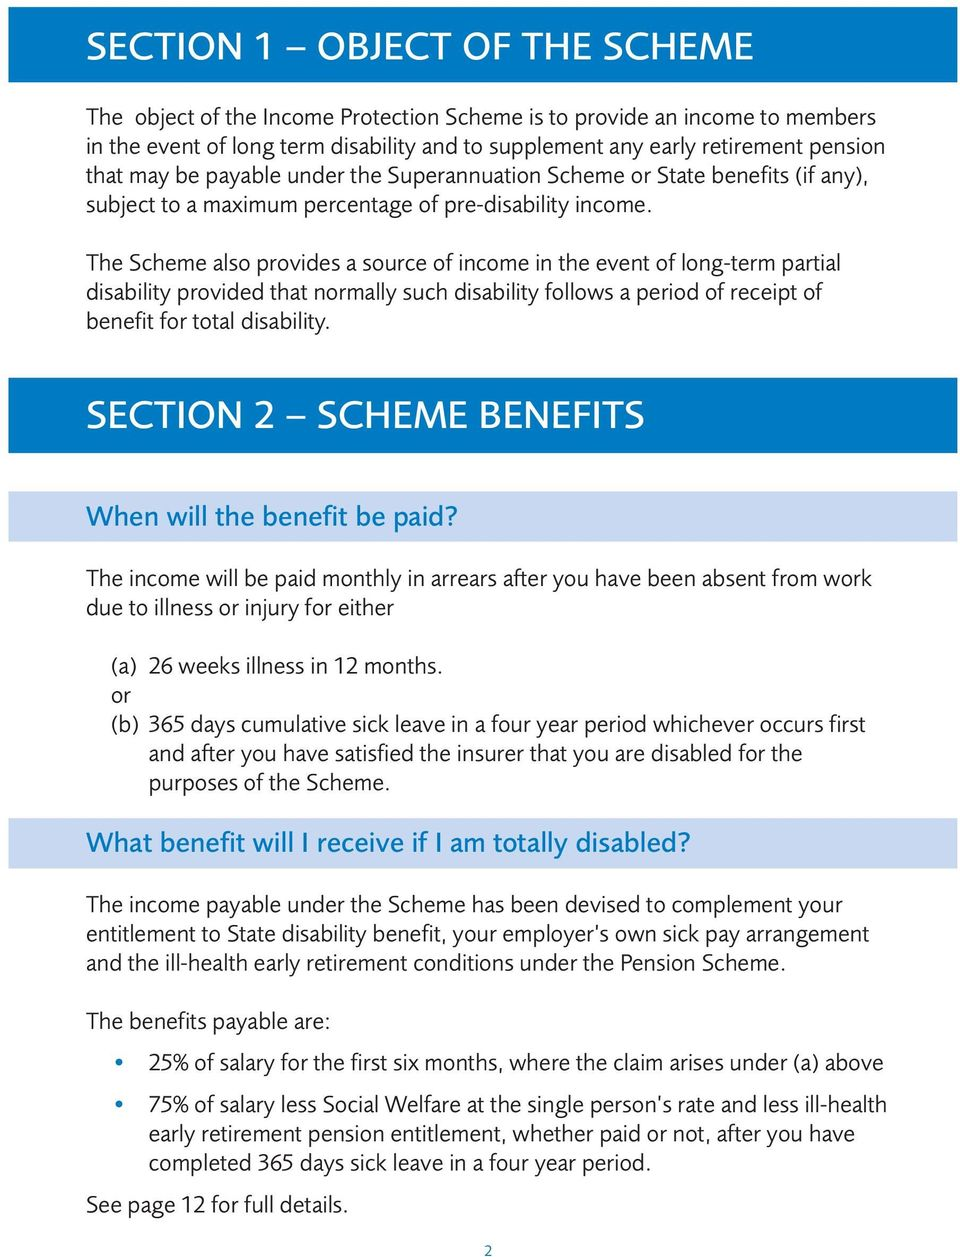 The Scheme also provides a source of income in the event of long-term partial disability provided that normally such disability follows a period of receipt of benefit for total disability.